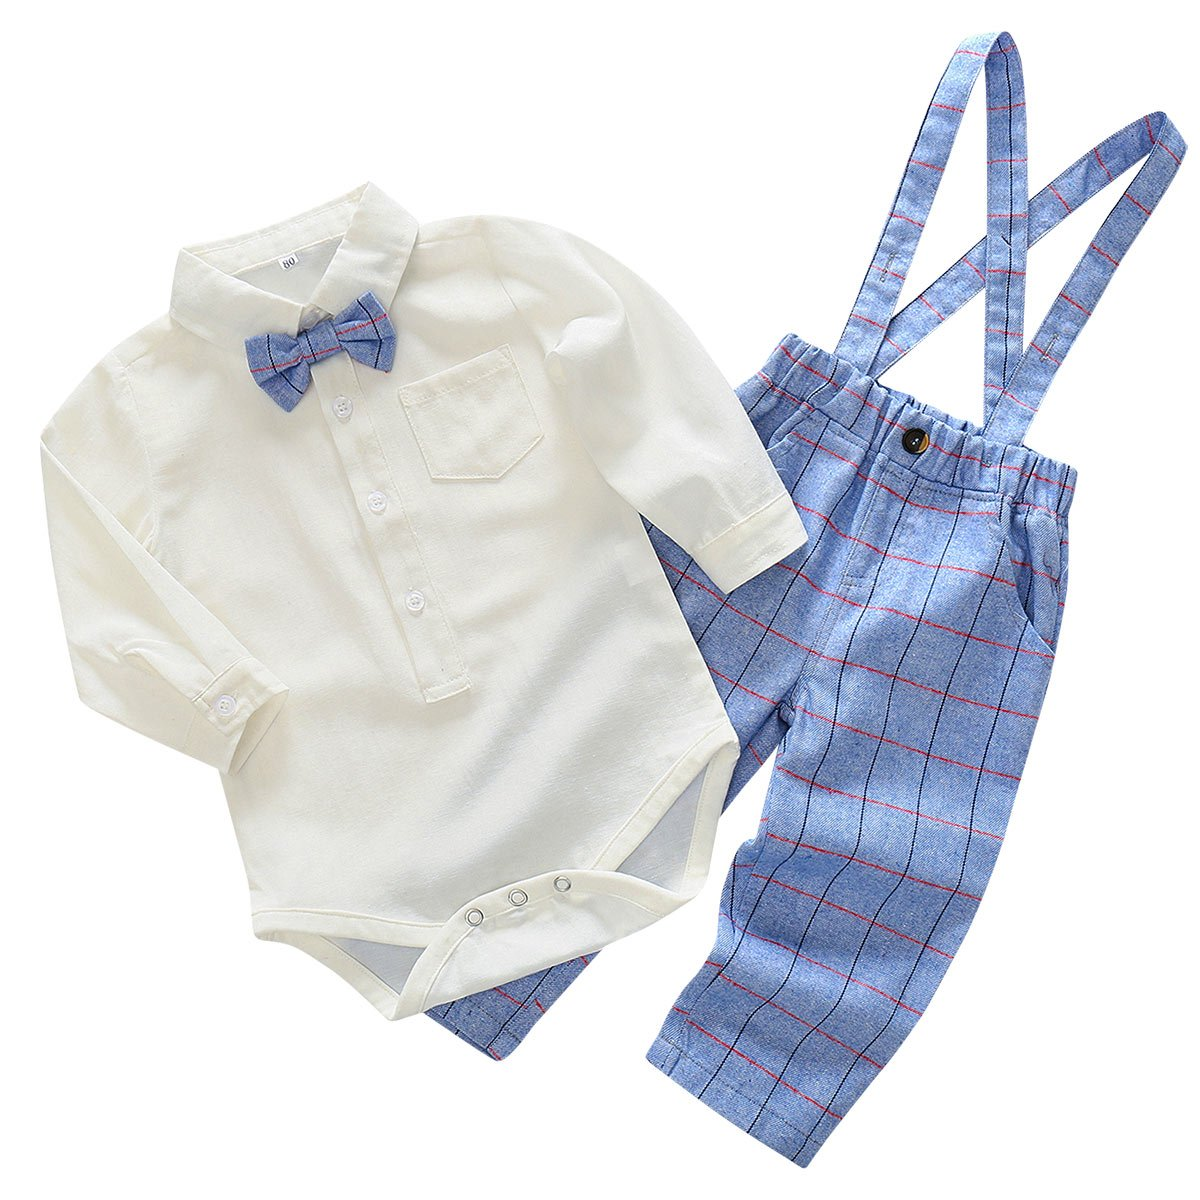 FEOYA Baby Boy Outfit Bodysuit Clothing Set 2 Pieces Romper Shirt Plaid Pants Strap Jumpsuit Overall Age 18-24 Months Grey